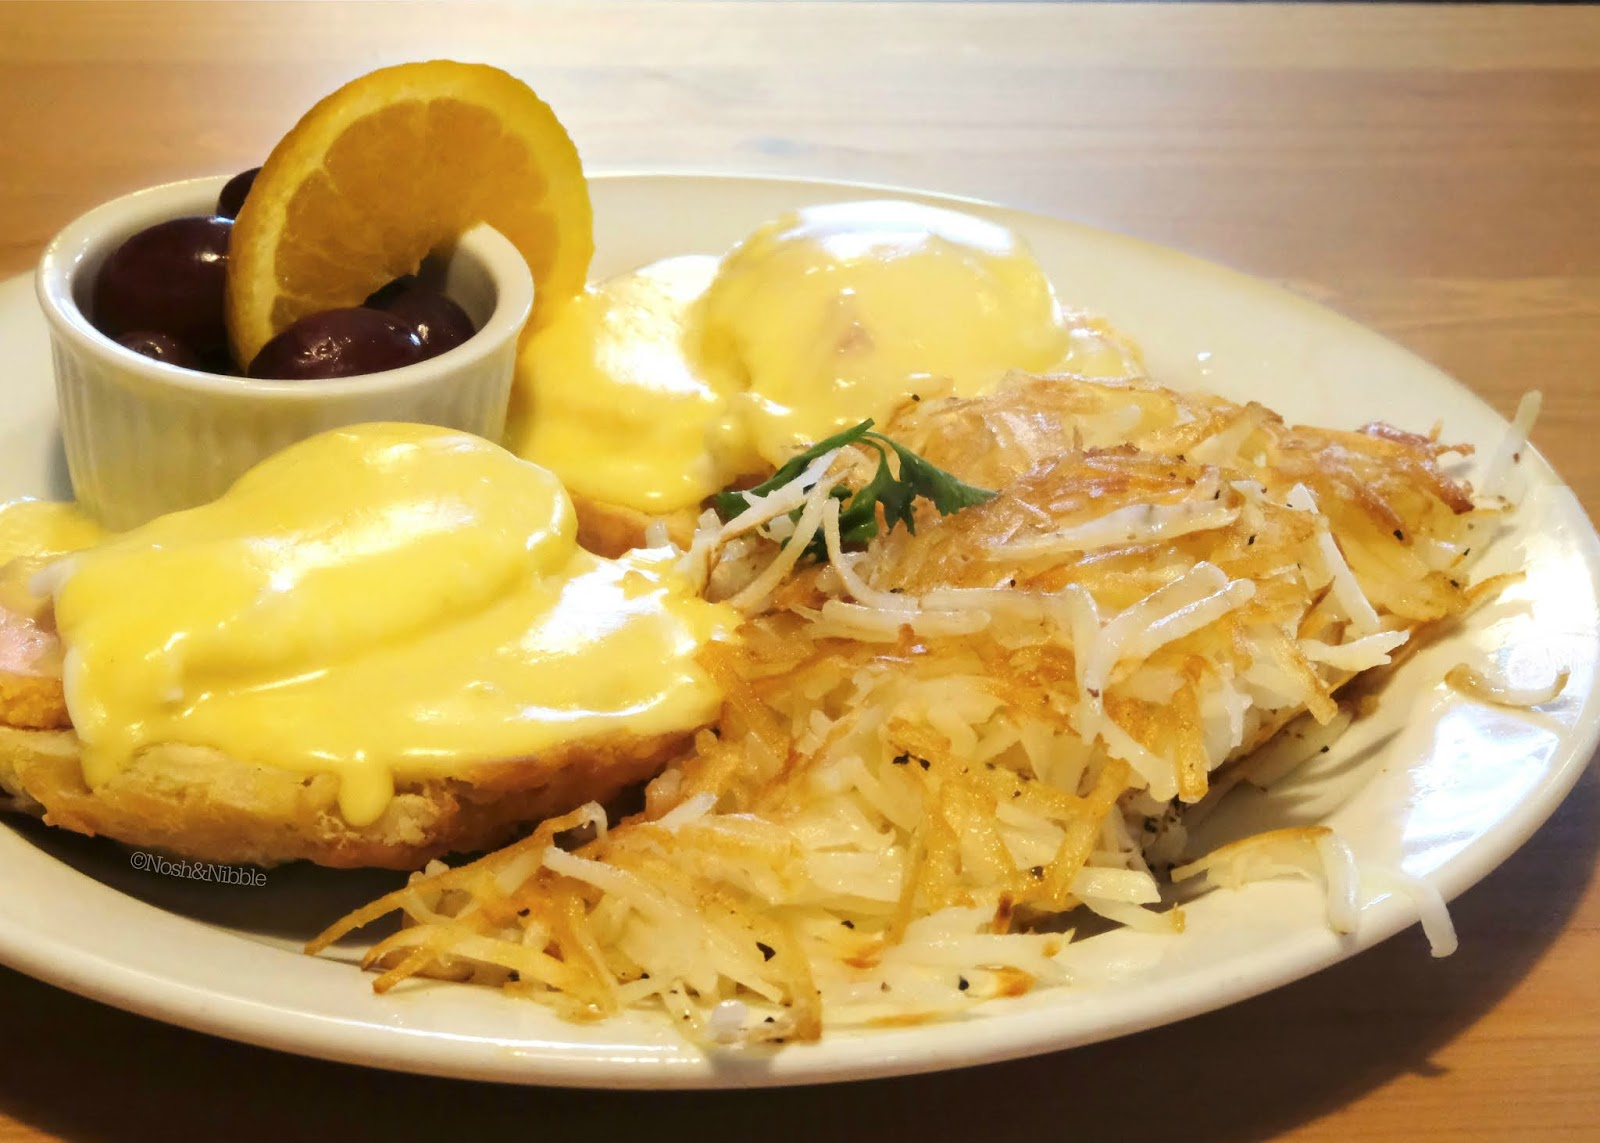 Shanzee's Biscuit Cafe in Victoria, BC | Biscuit Benny: Review